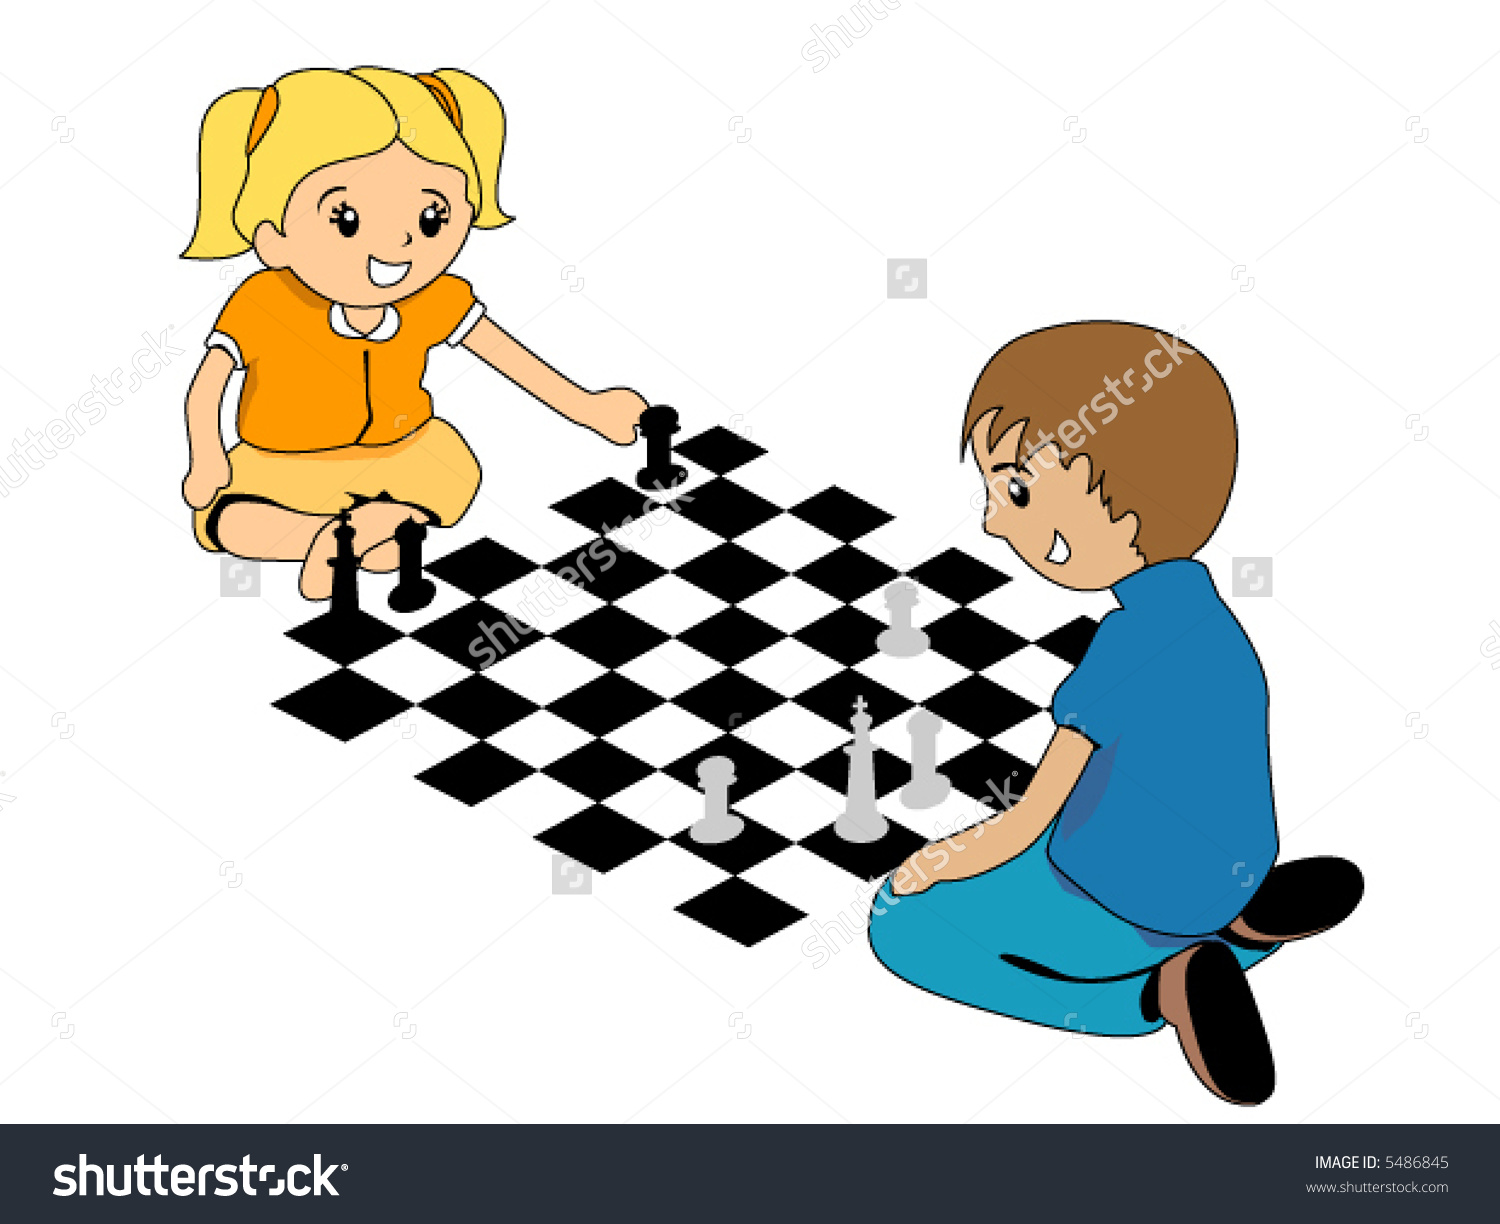 Club clipart play chess Chess playing chess Playing collection